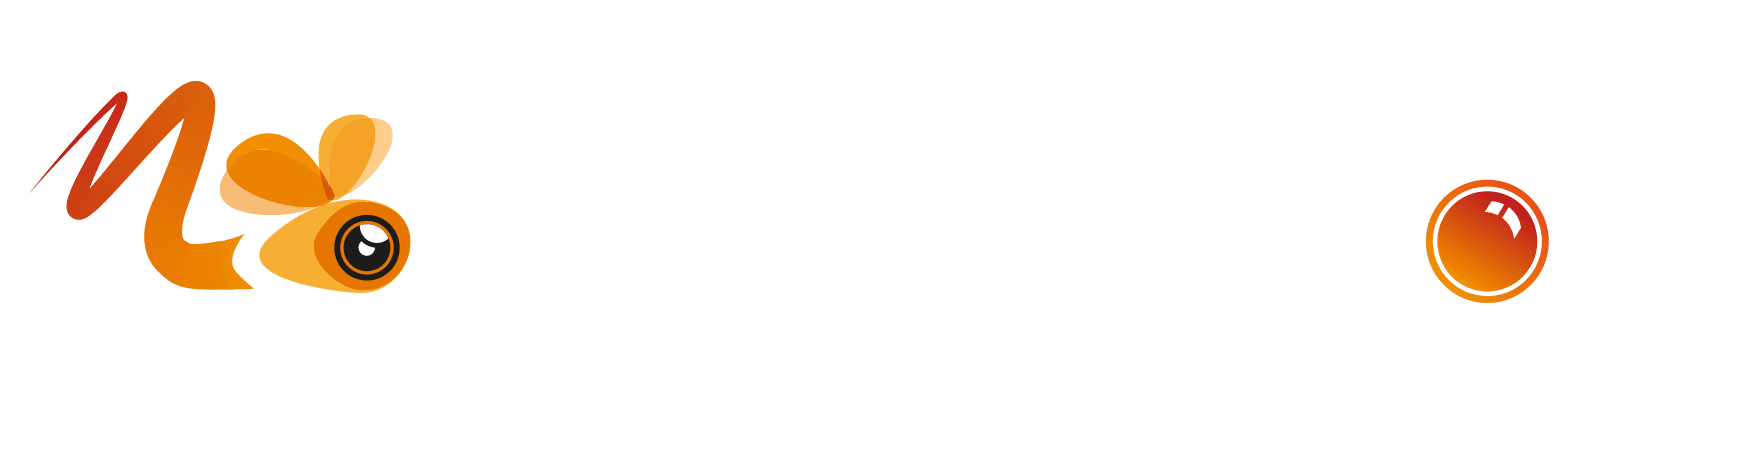 Moviedron